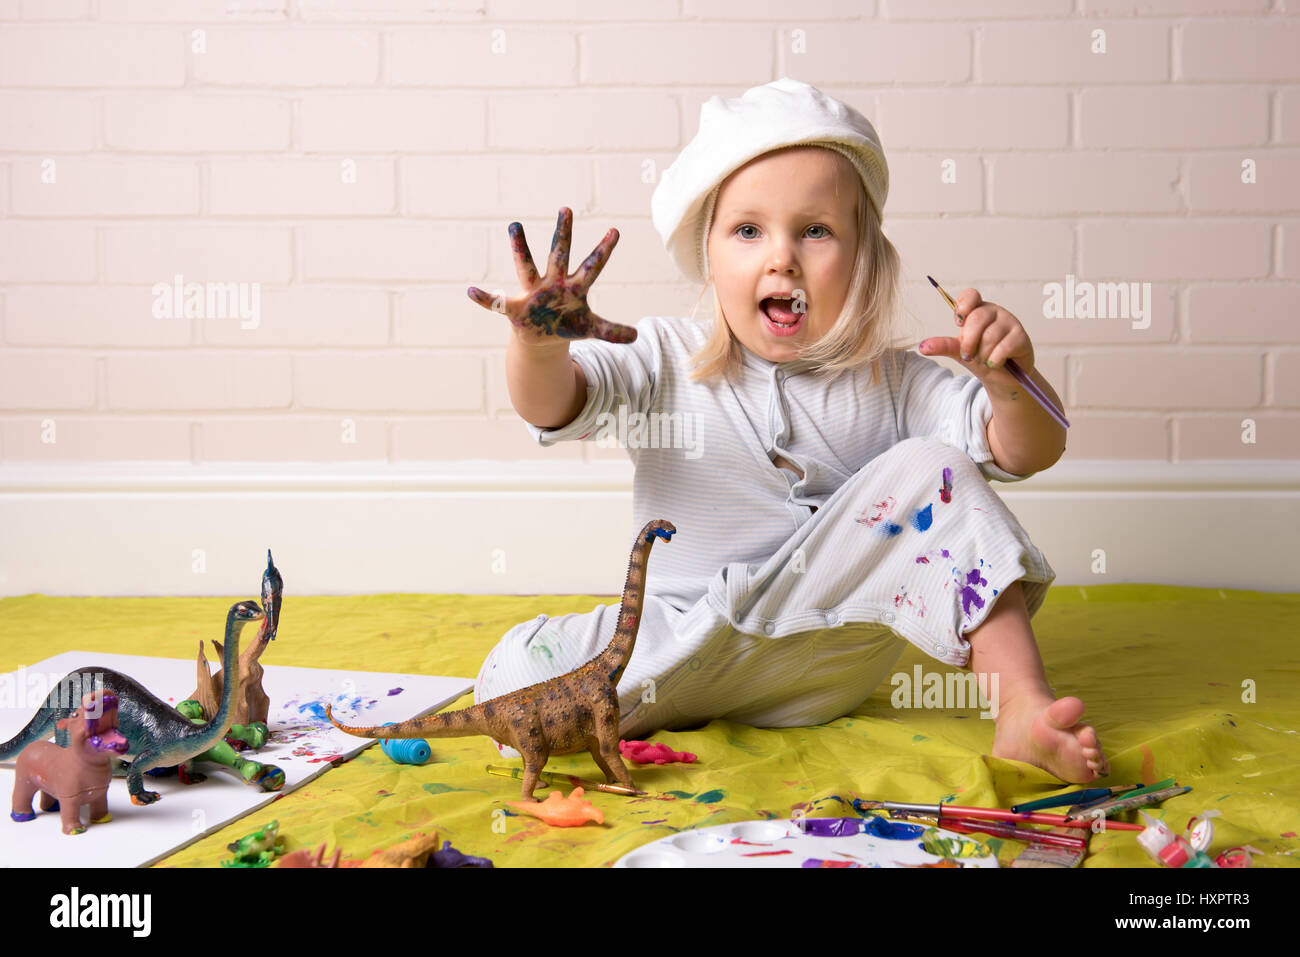 Little Girl having messy play with paints  and showing colorful painted hands. - Stock Image